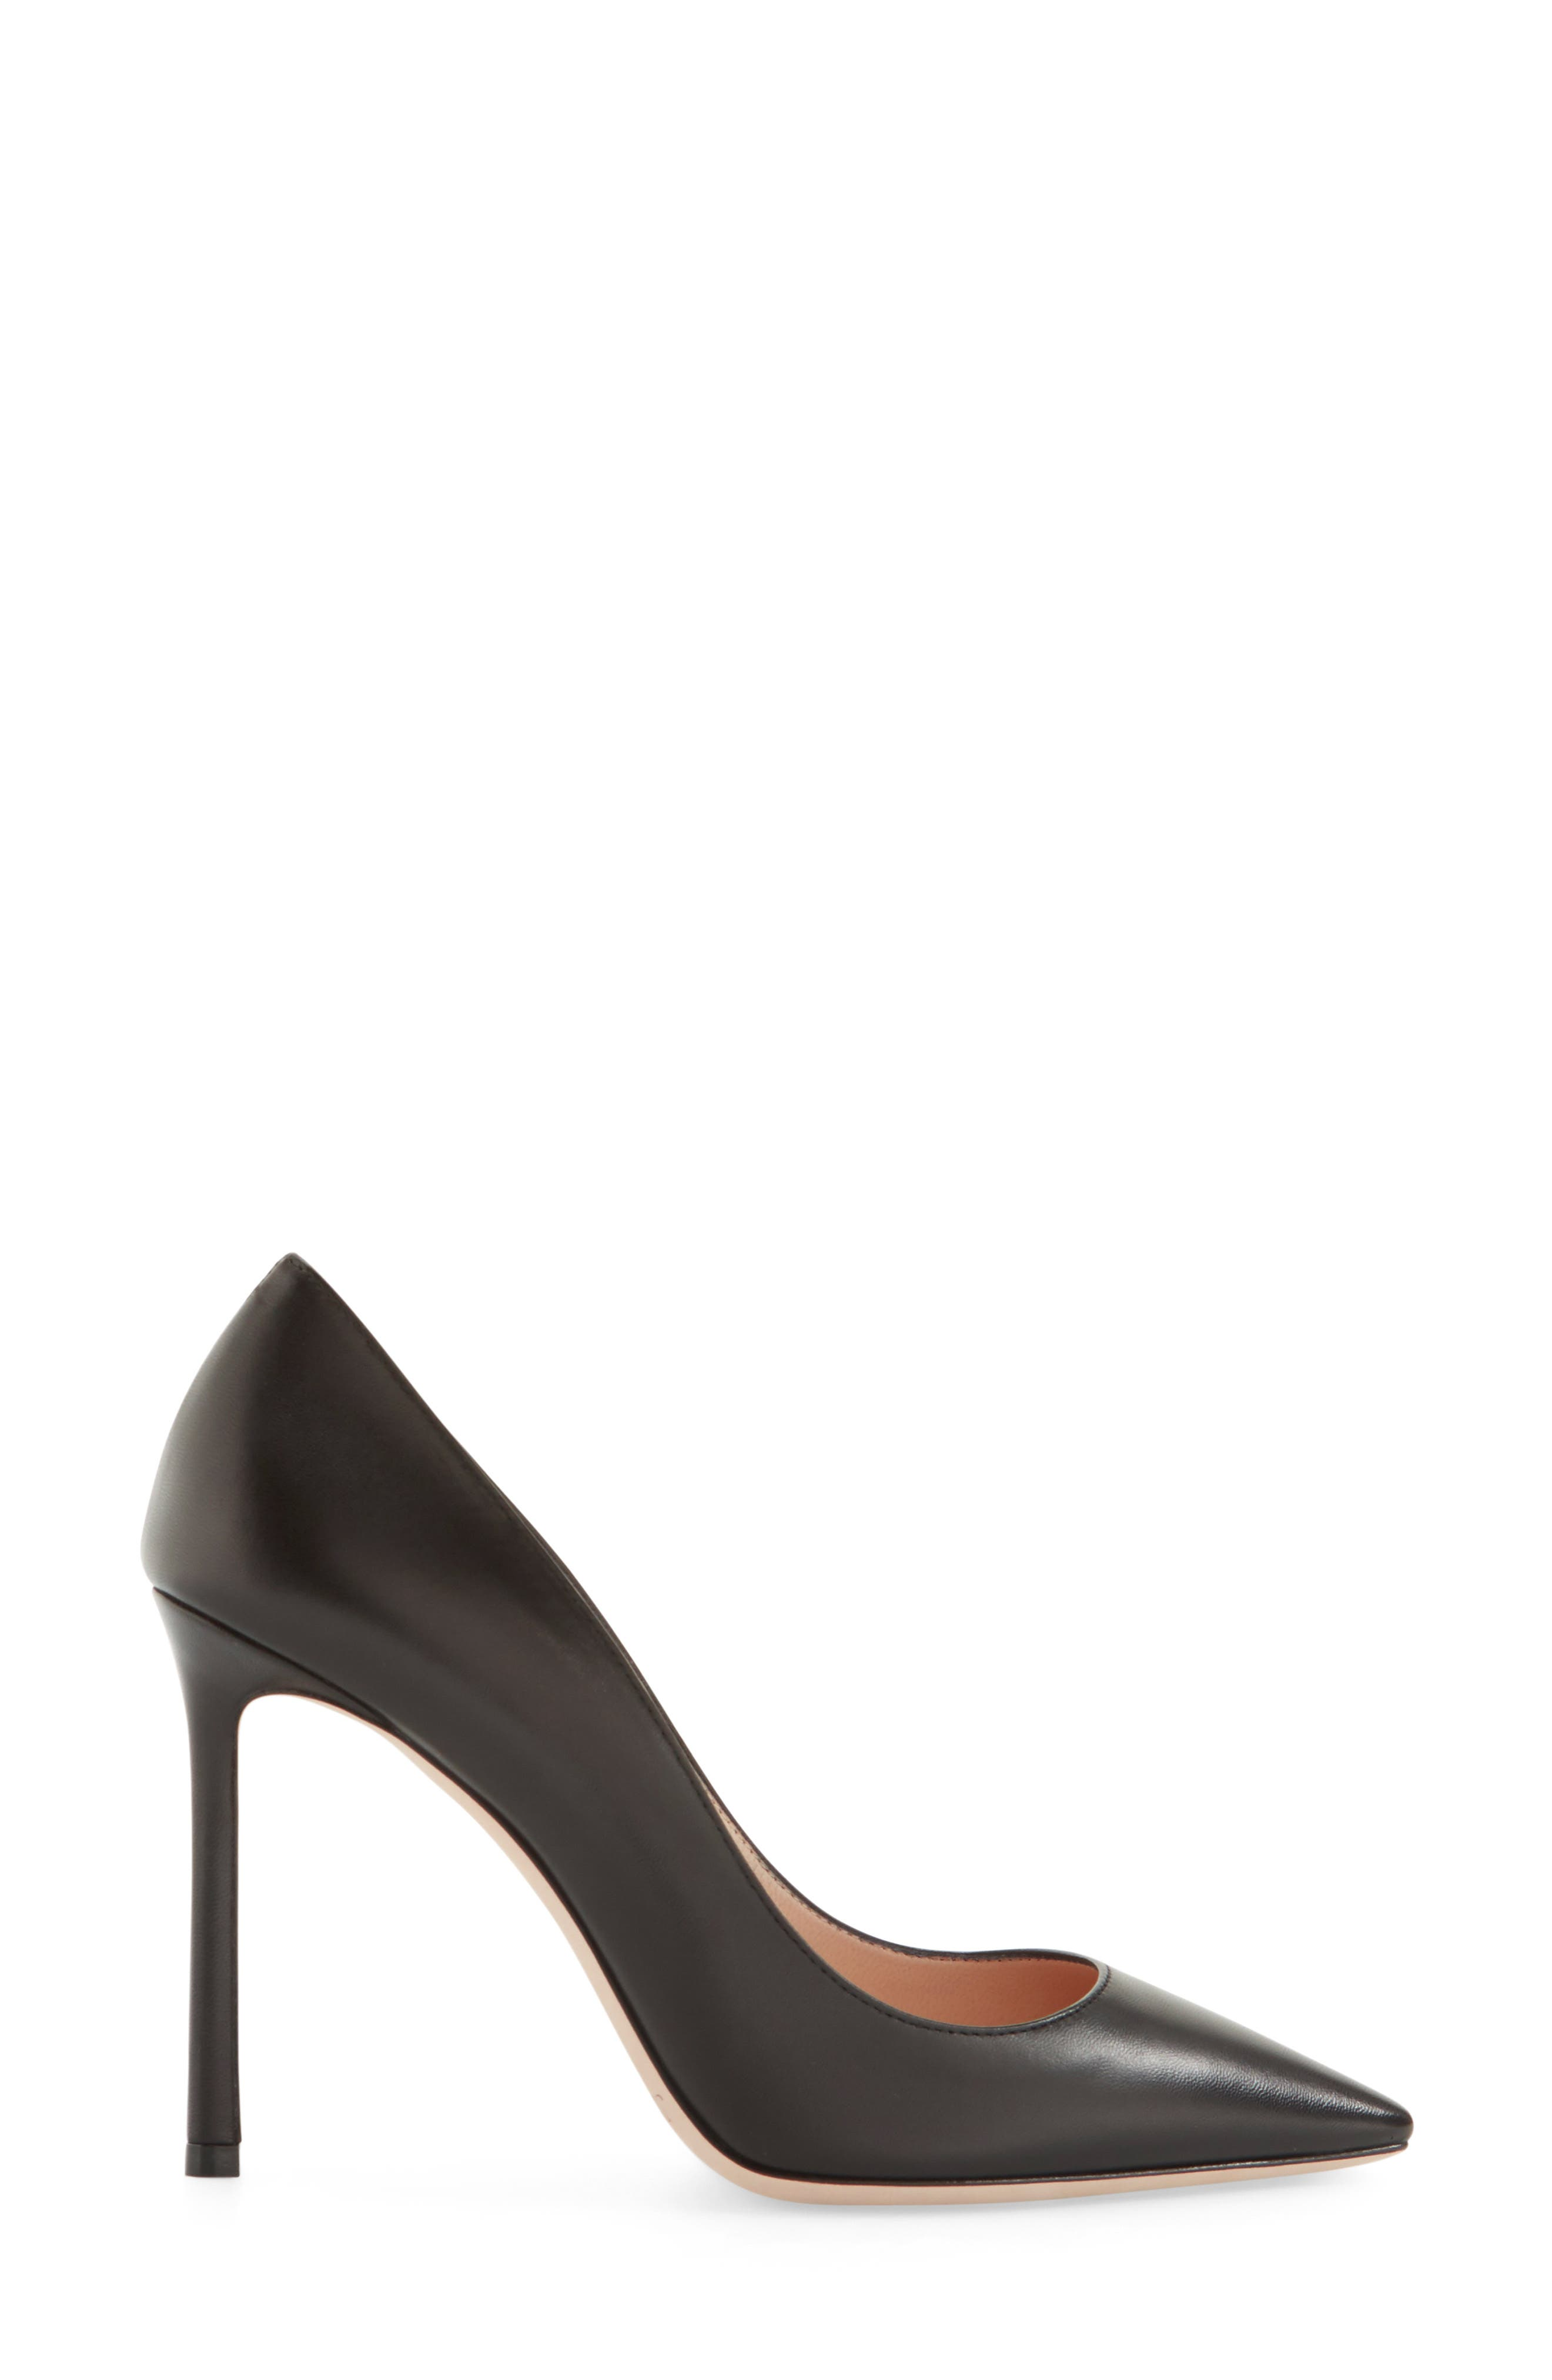 'Romy' Pointy Toe Pump,                             Alternate thumbnail 3, color,                             BLACK LEATHER